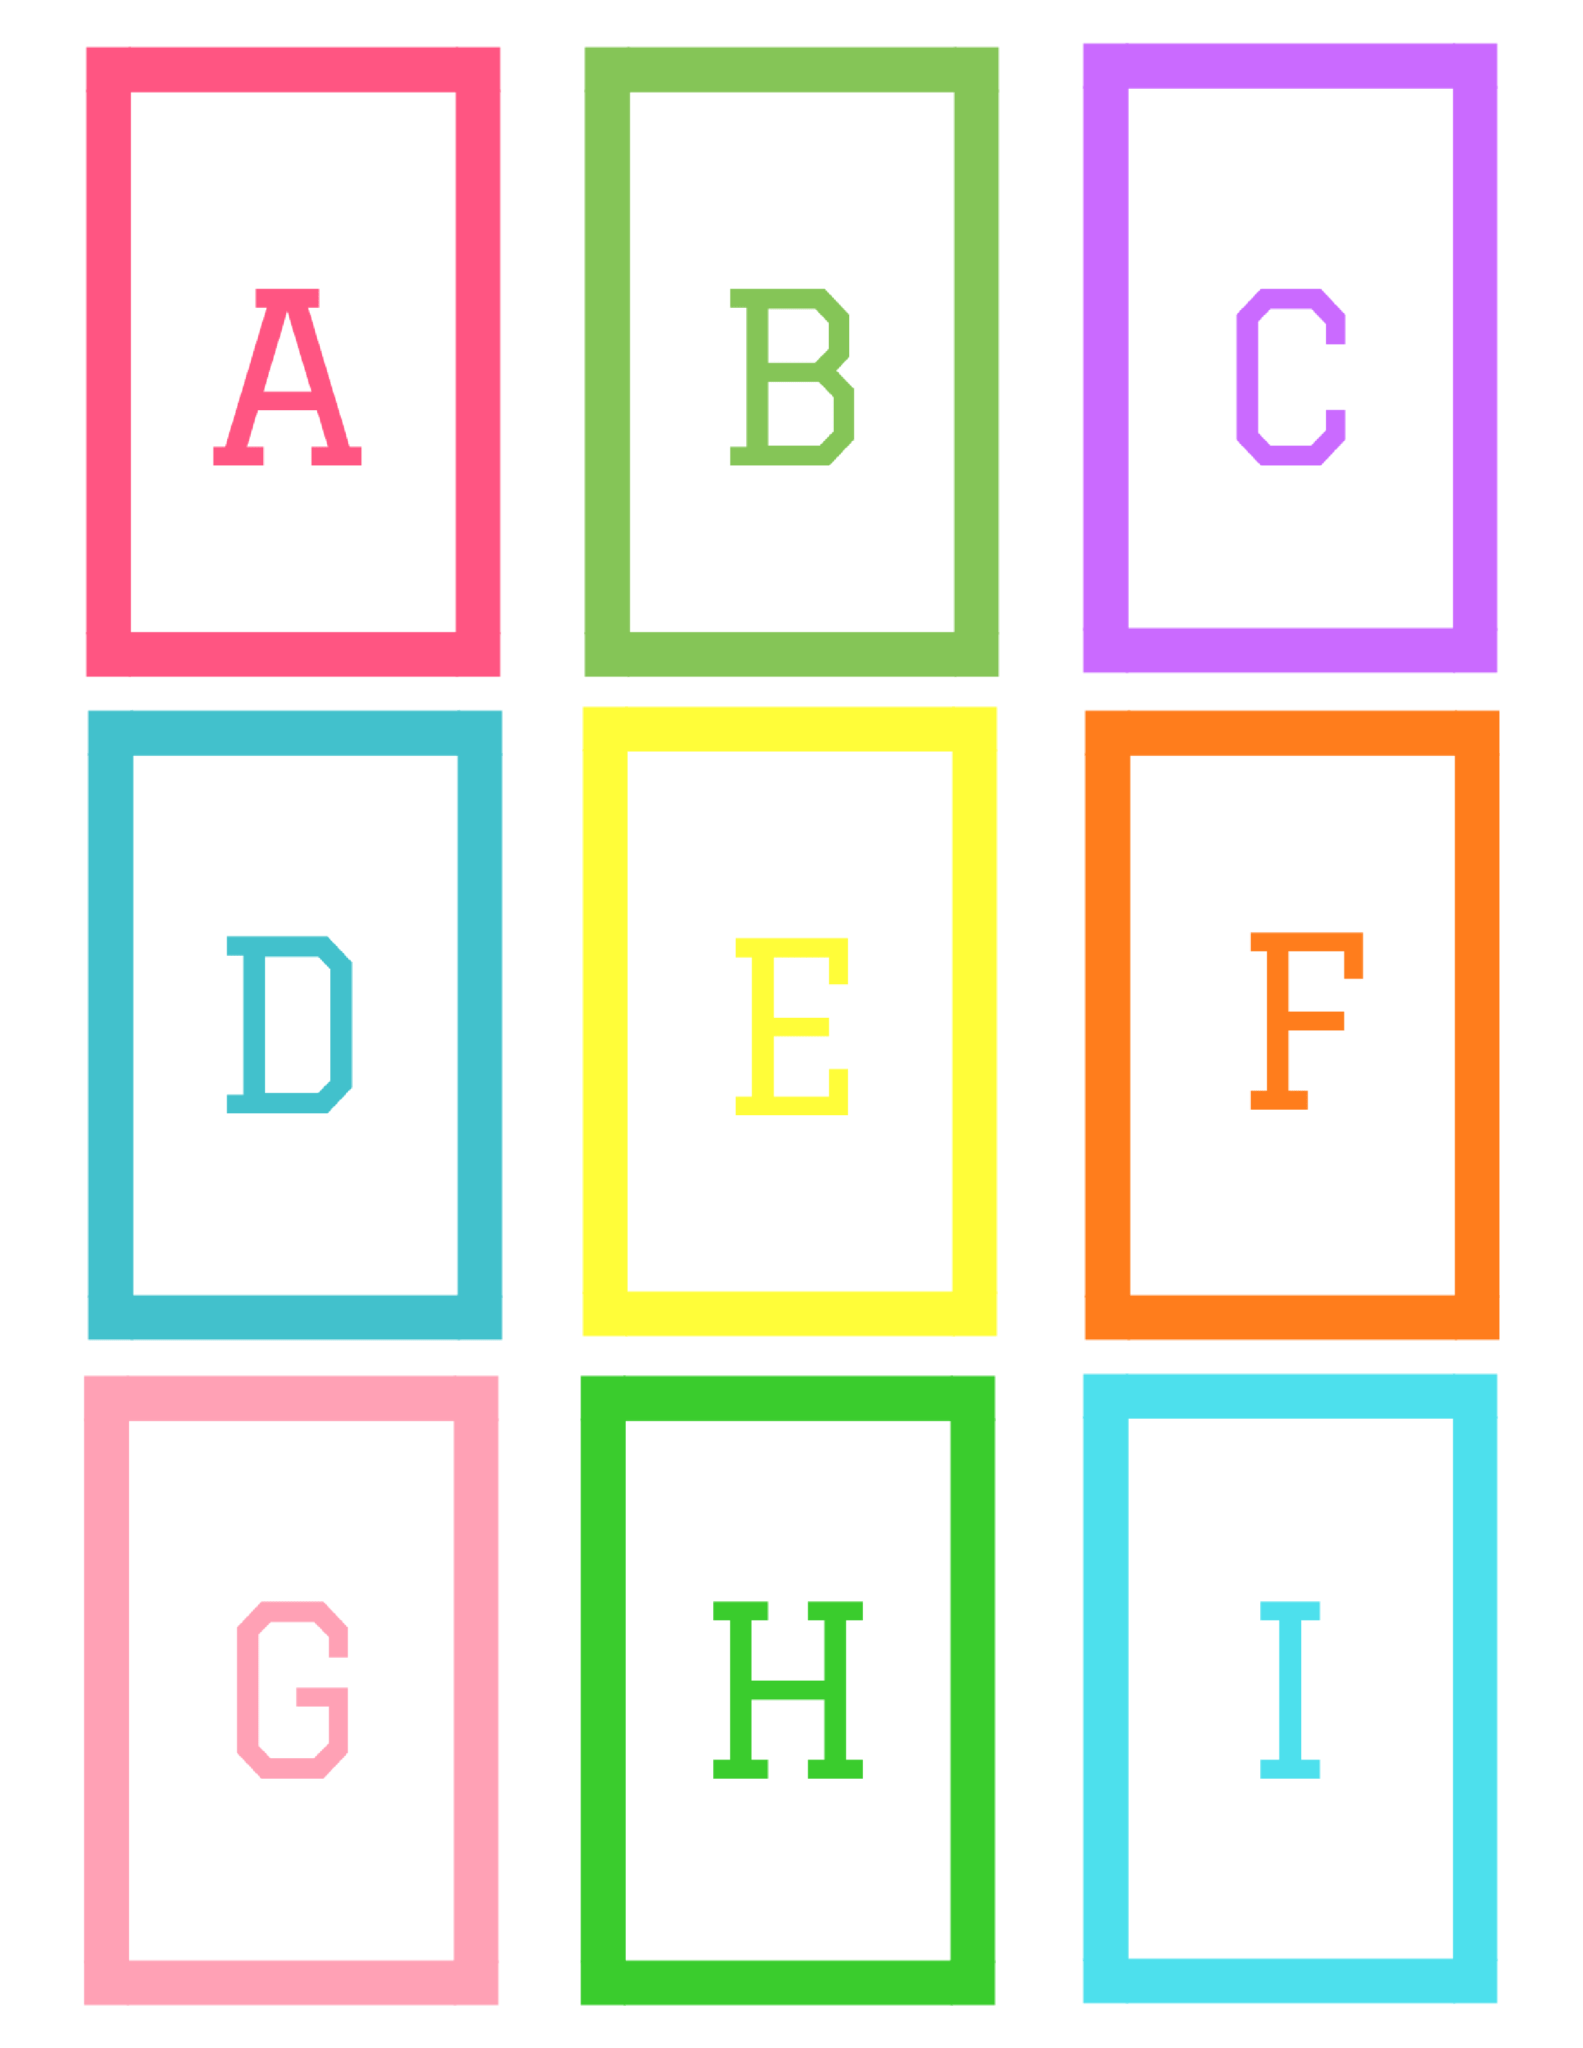 photograph about Abc Flash Cards Printable identify ABC Flashcards: No cost Printable - Very simple Mother Study